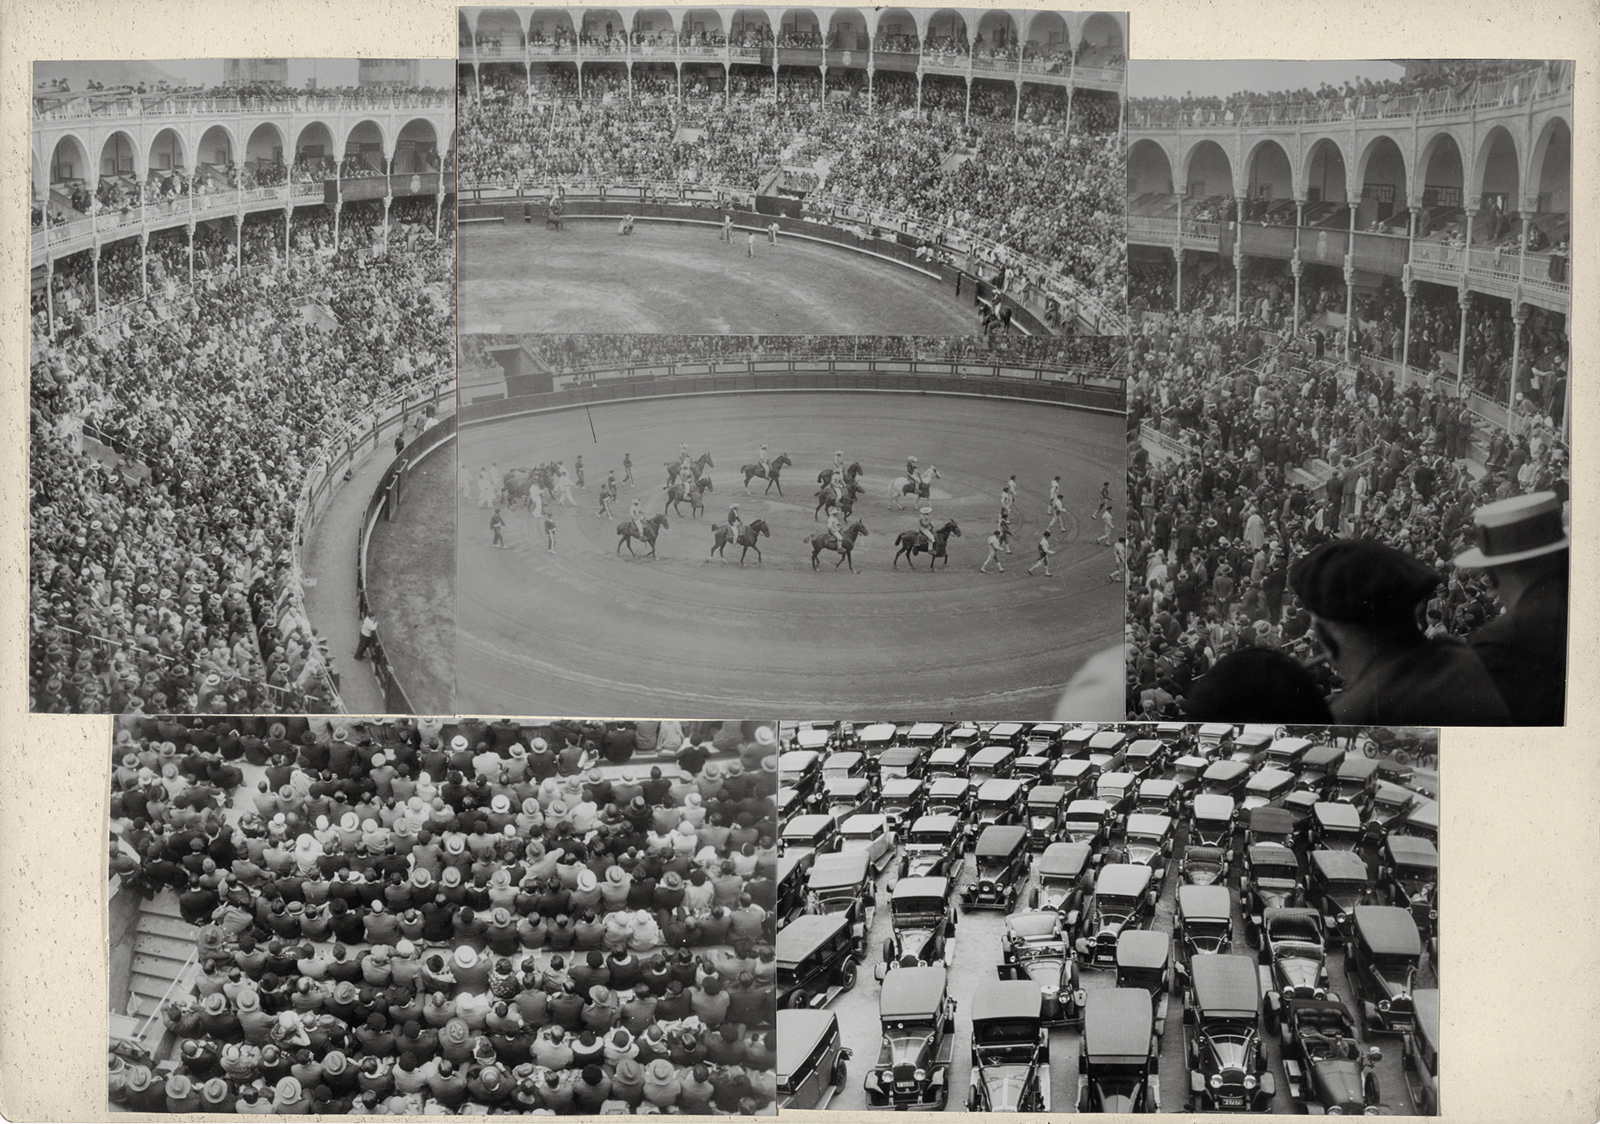 Josef Albers, Bullfight, San Sebastian, 1929 (Museum of Modern Art, New York/Jo Carole, Ronald S. Lauder, and Jon L. Stryker)